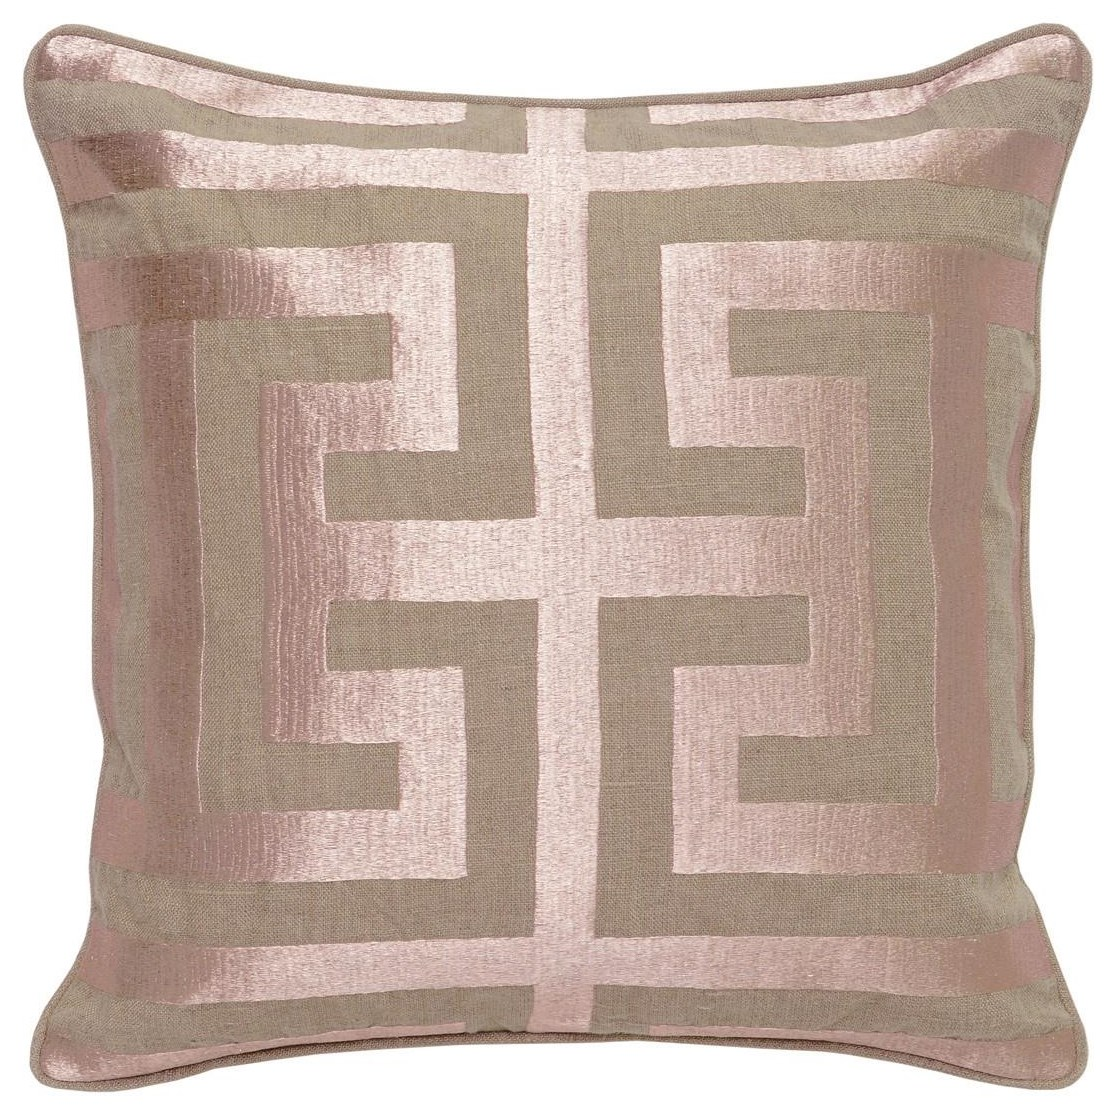 Rose Gold Square Accent Pillow